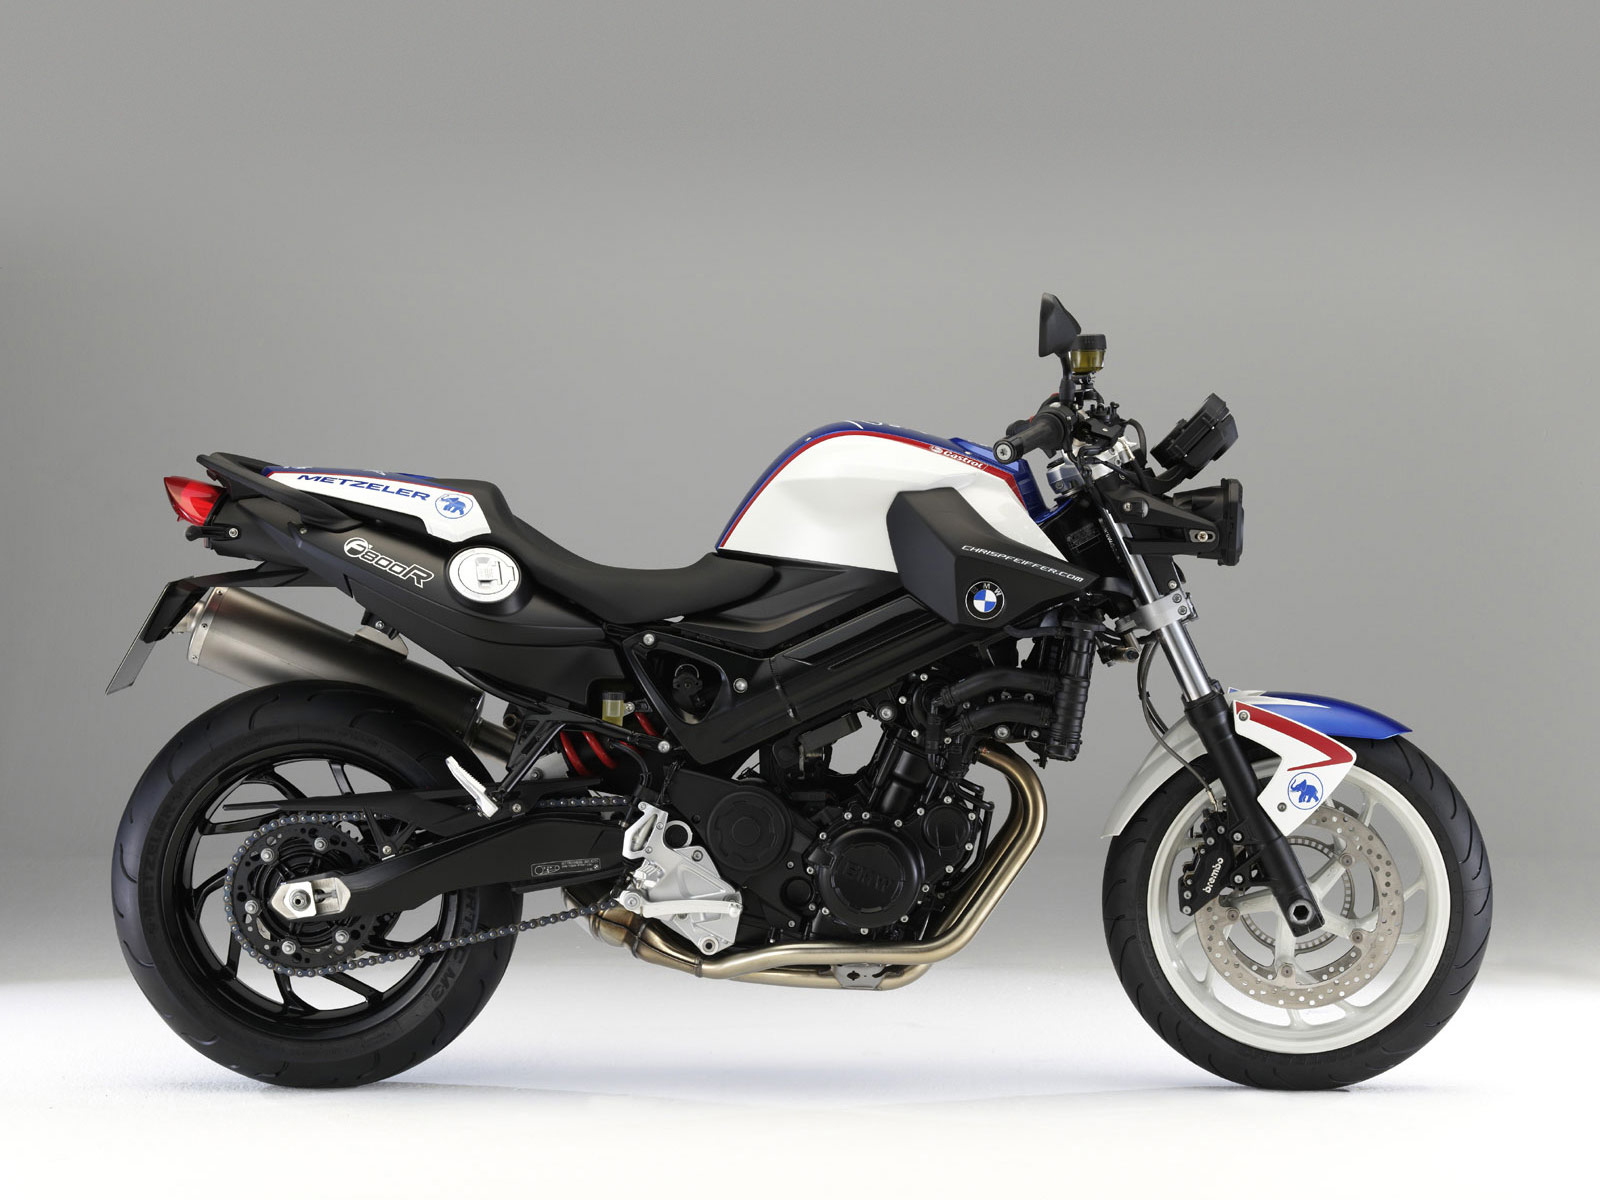 2010 NEW BMW F800R Chris Pfeiffer